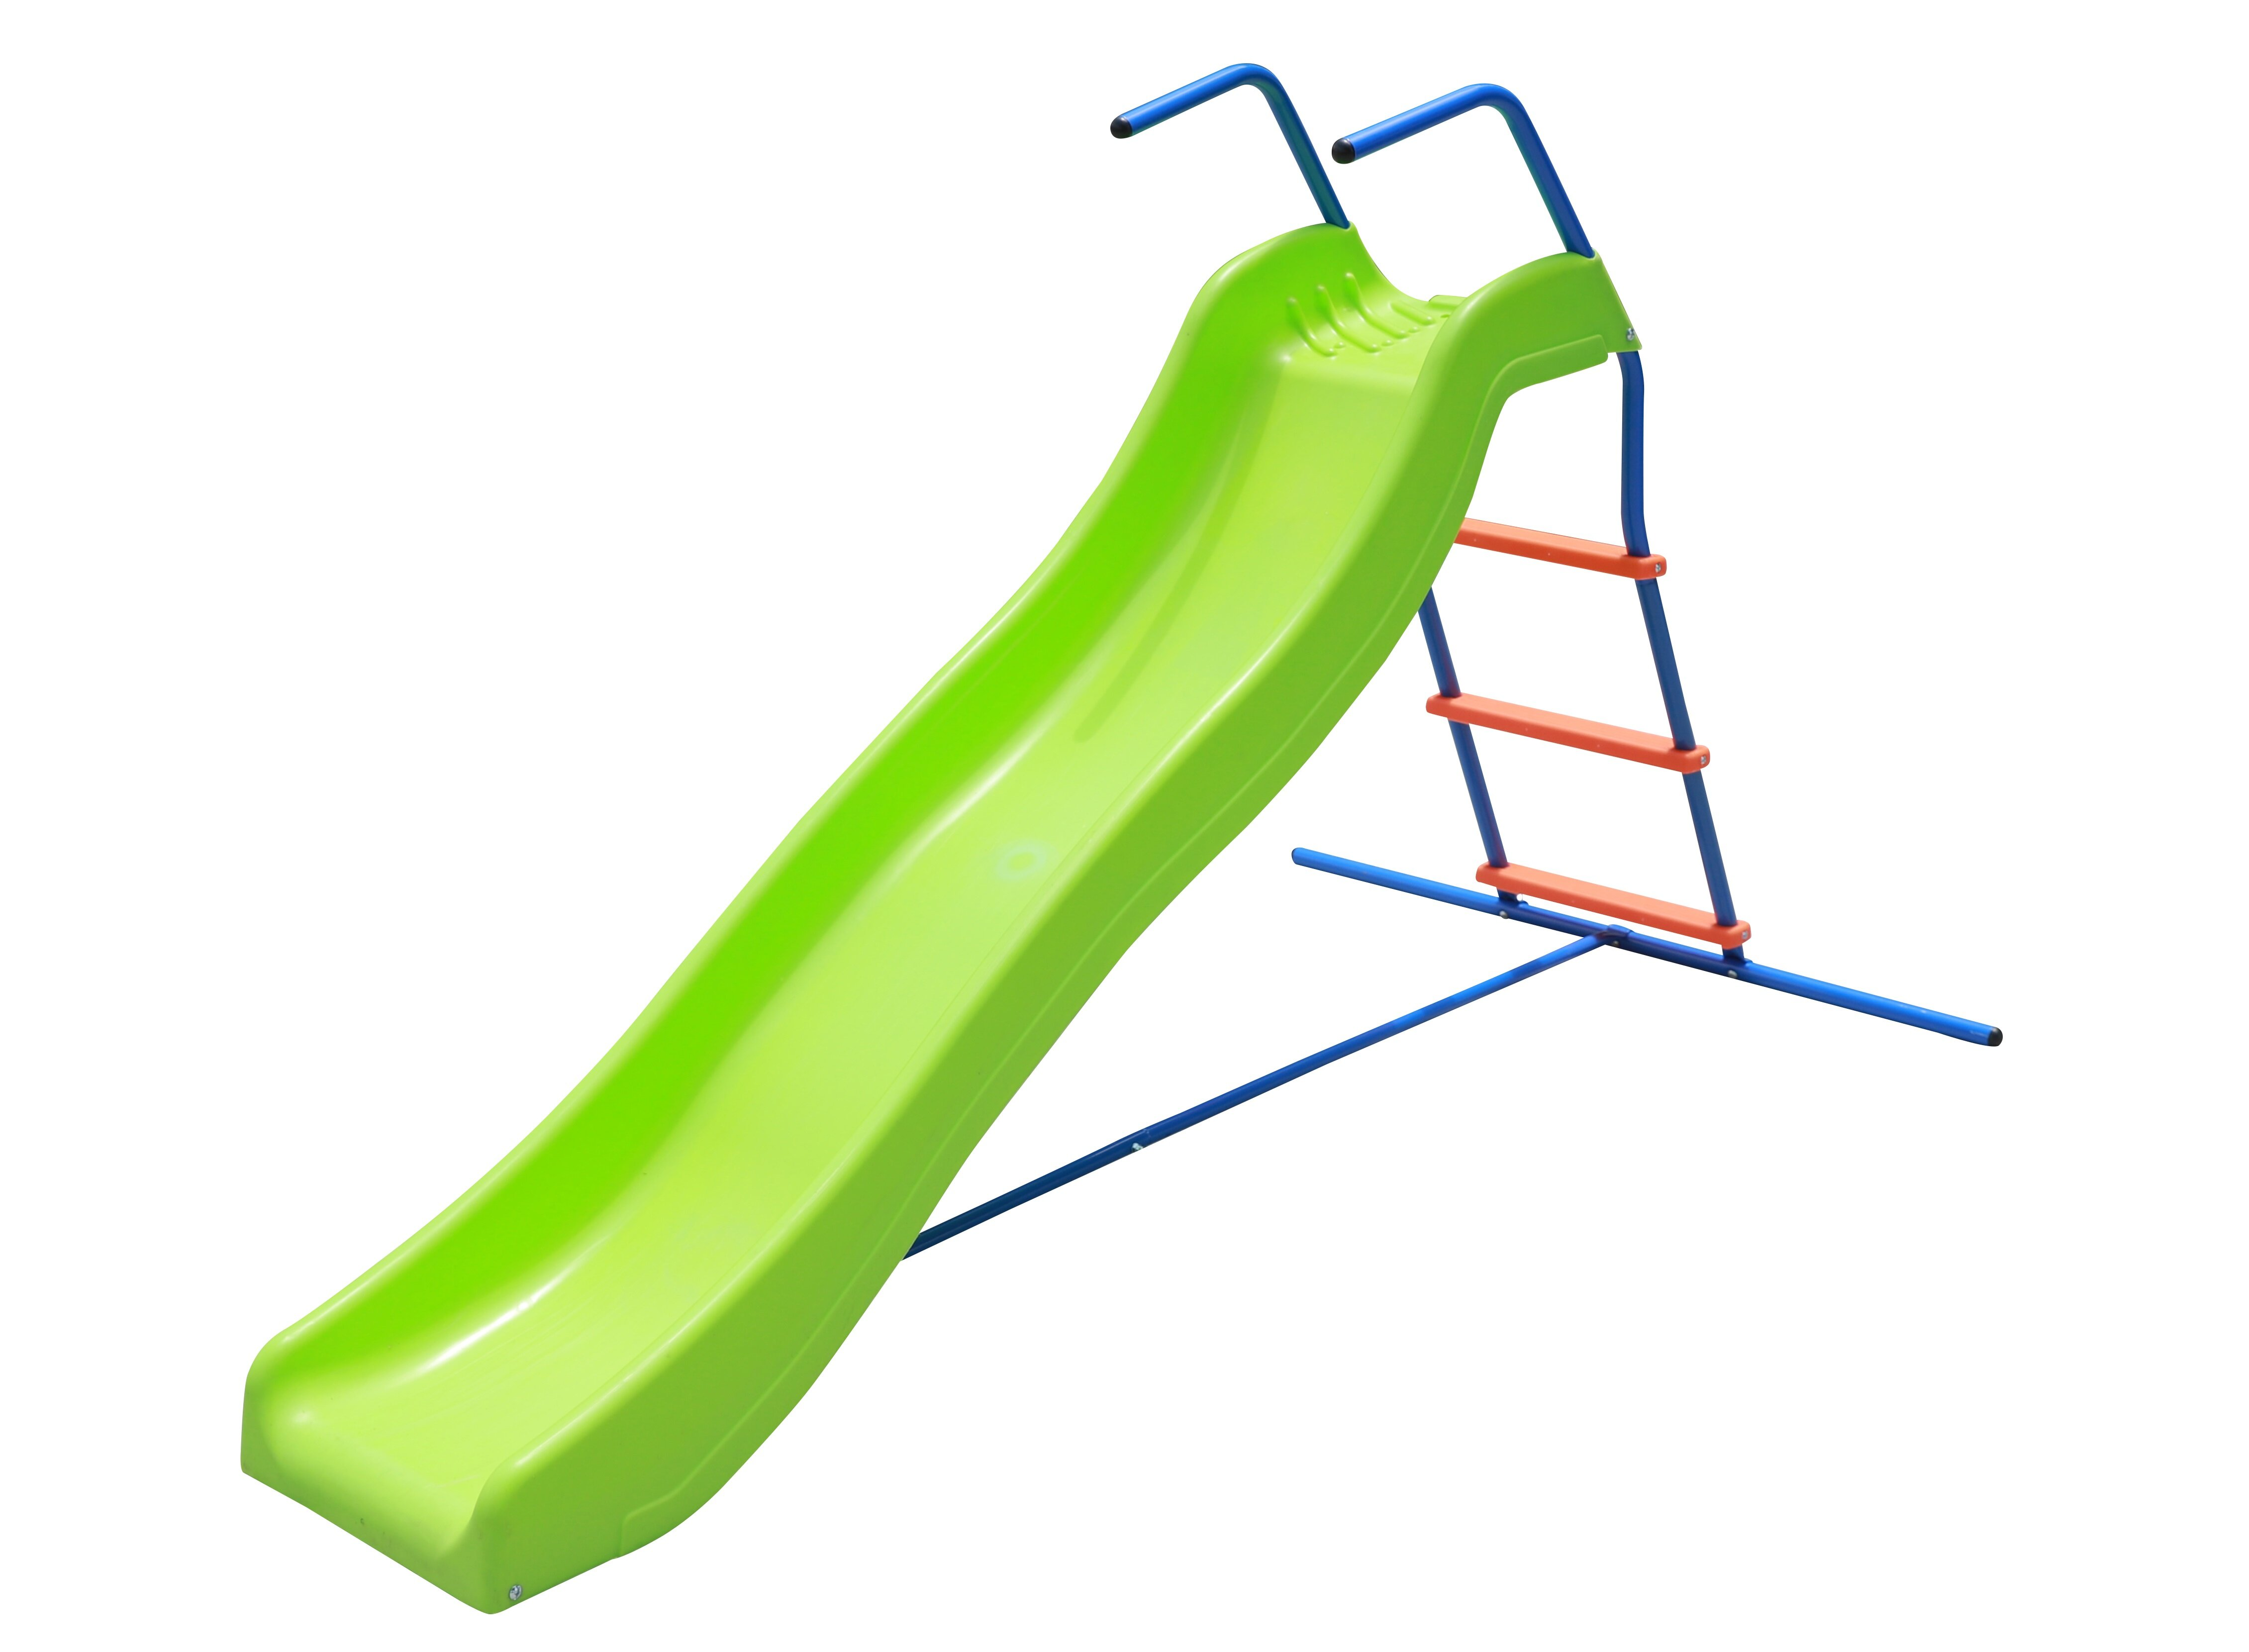 Kids Climber Toddler Slide Indoor//Outdoor for Little Boys Girls Age 3 3 in 1 Freestanding Slide Playset Baby Playground with Basketball Hoop Children Activity Gym Toys Outside Backyard Games Blue